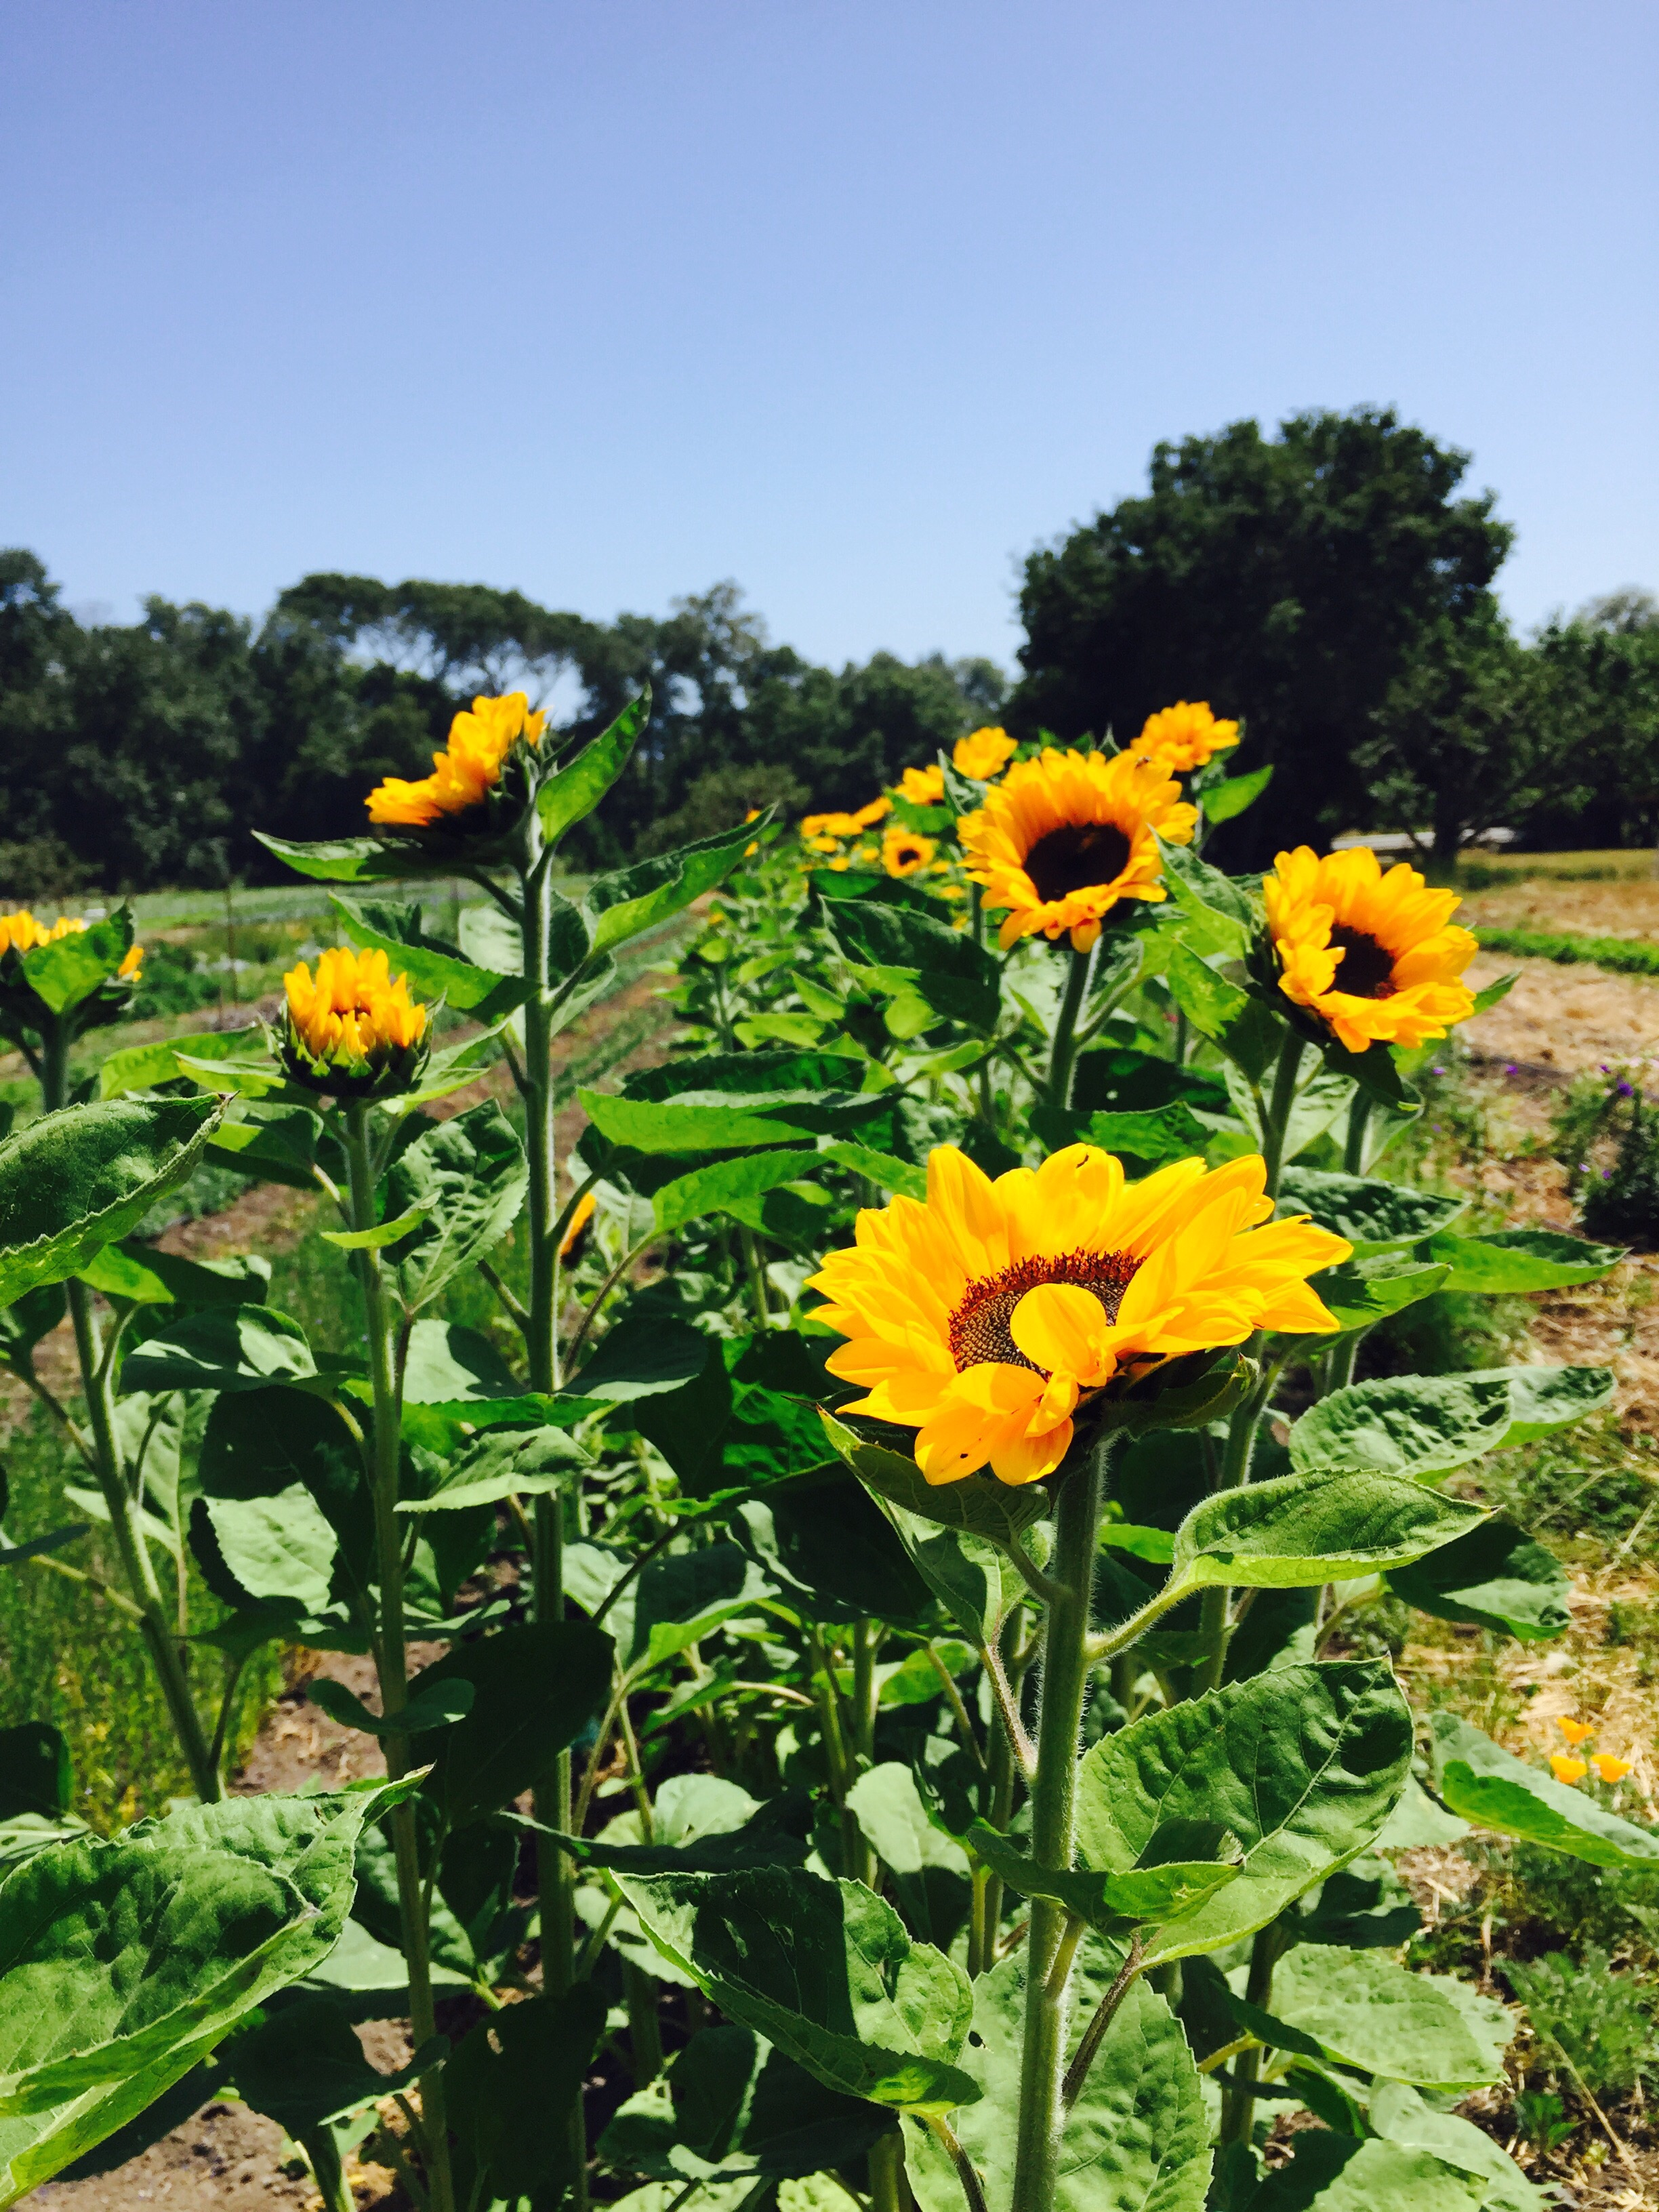 Reaching for the Sun at Everett Family Farm in Soquel, California